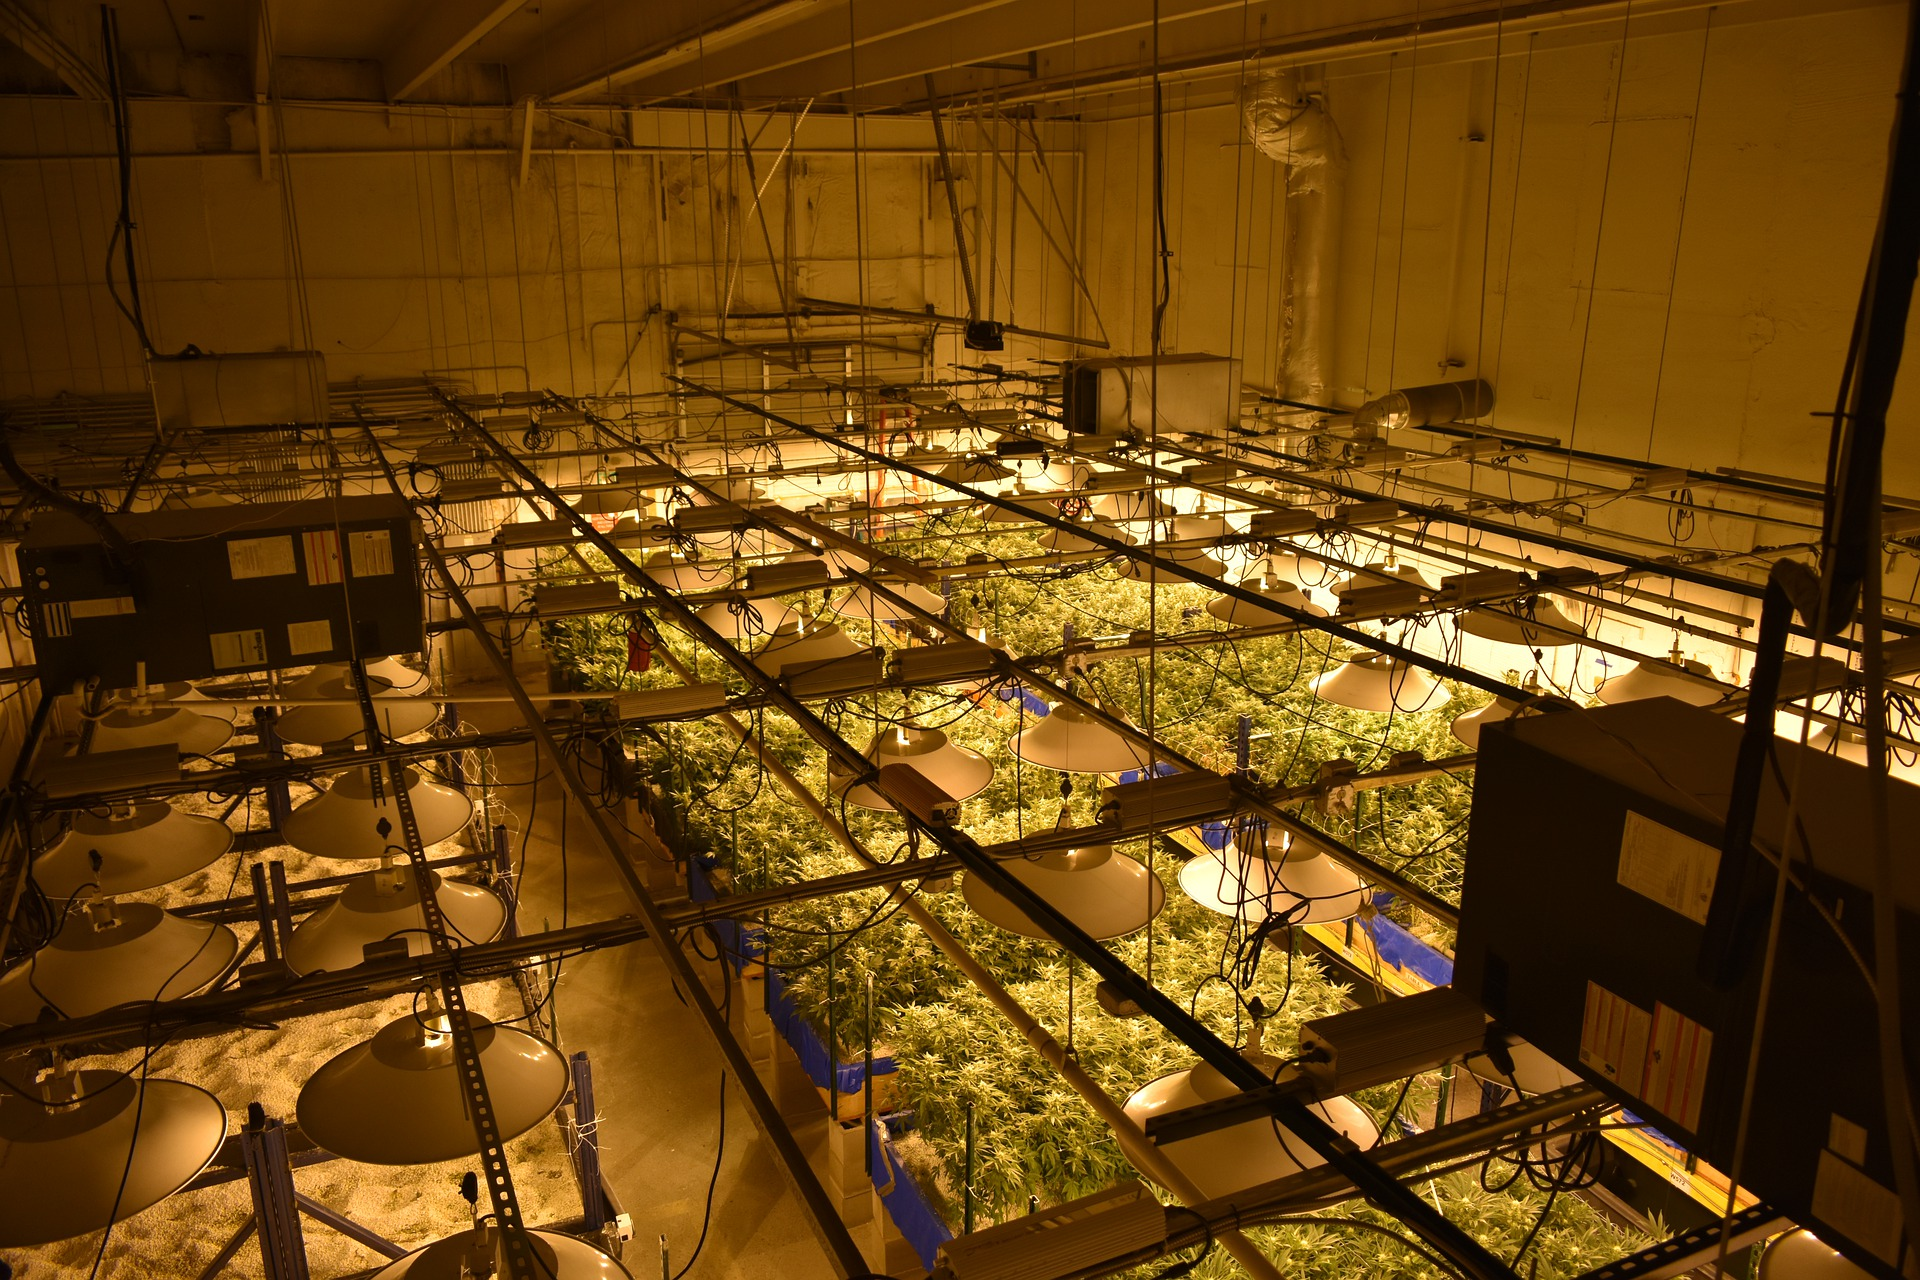 image of a grow room setup with LED grow lights